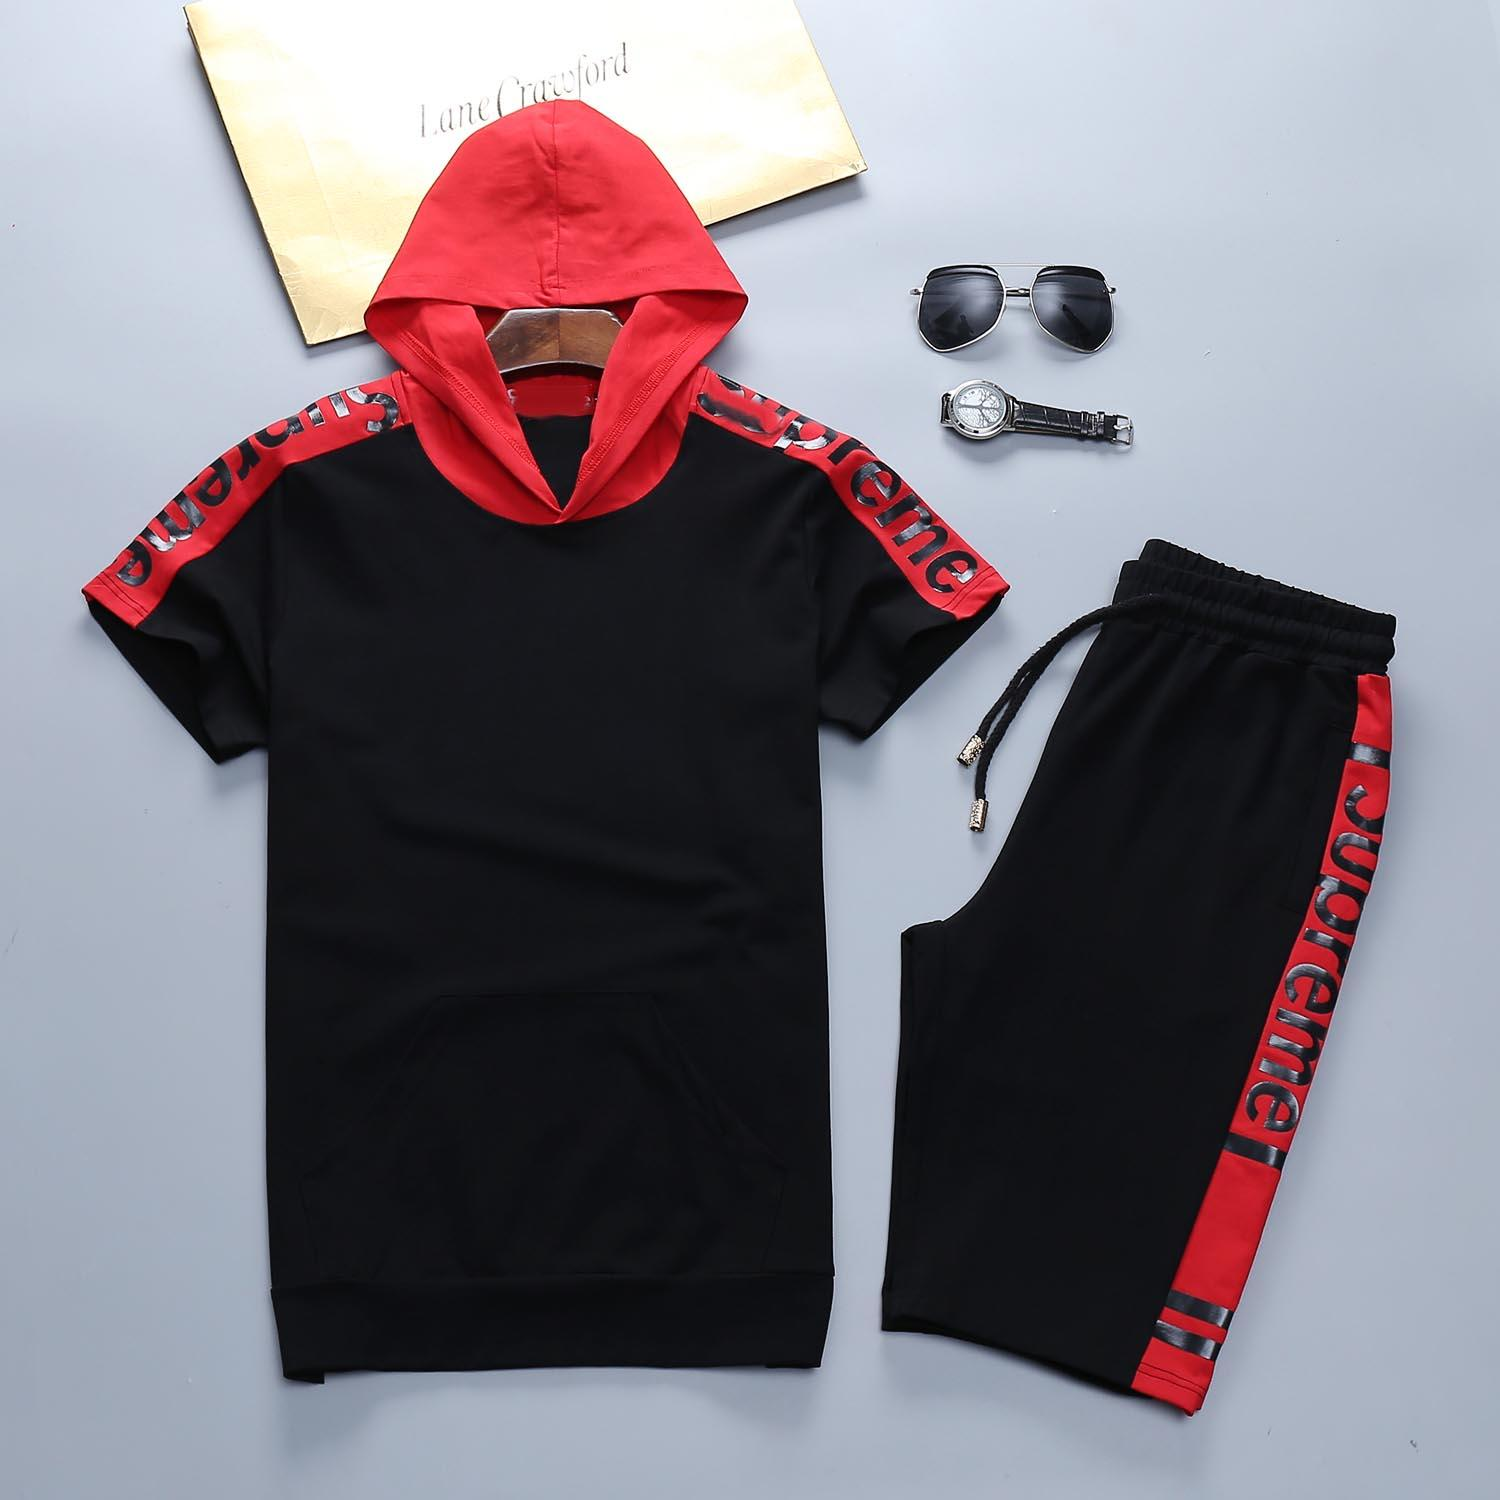 Designer Luxury Mens Tute Summer T-shirt + Pant Sportswear Fashion Sets manica corta da jogging di alta qualità Plus Size